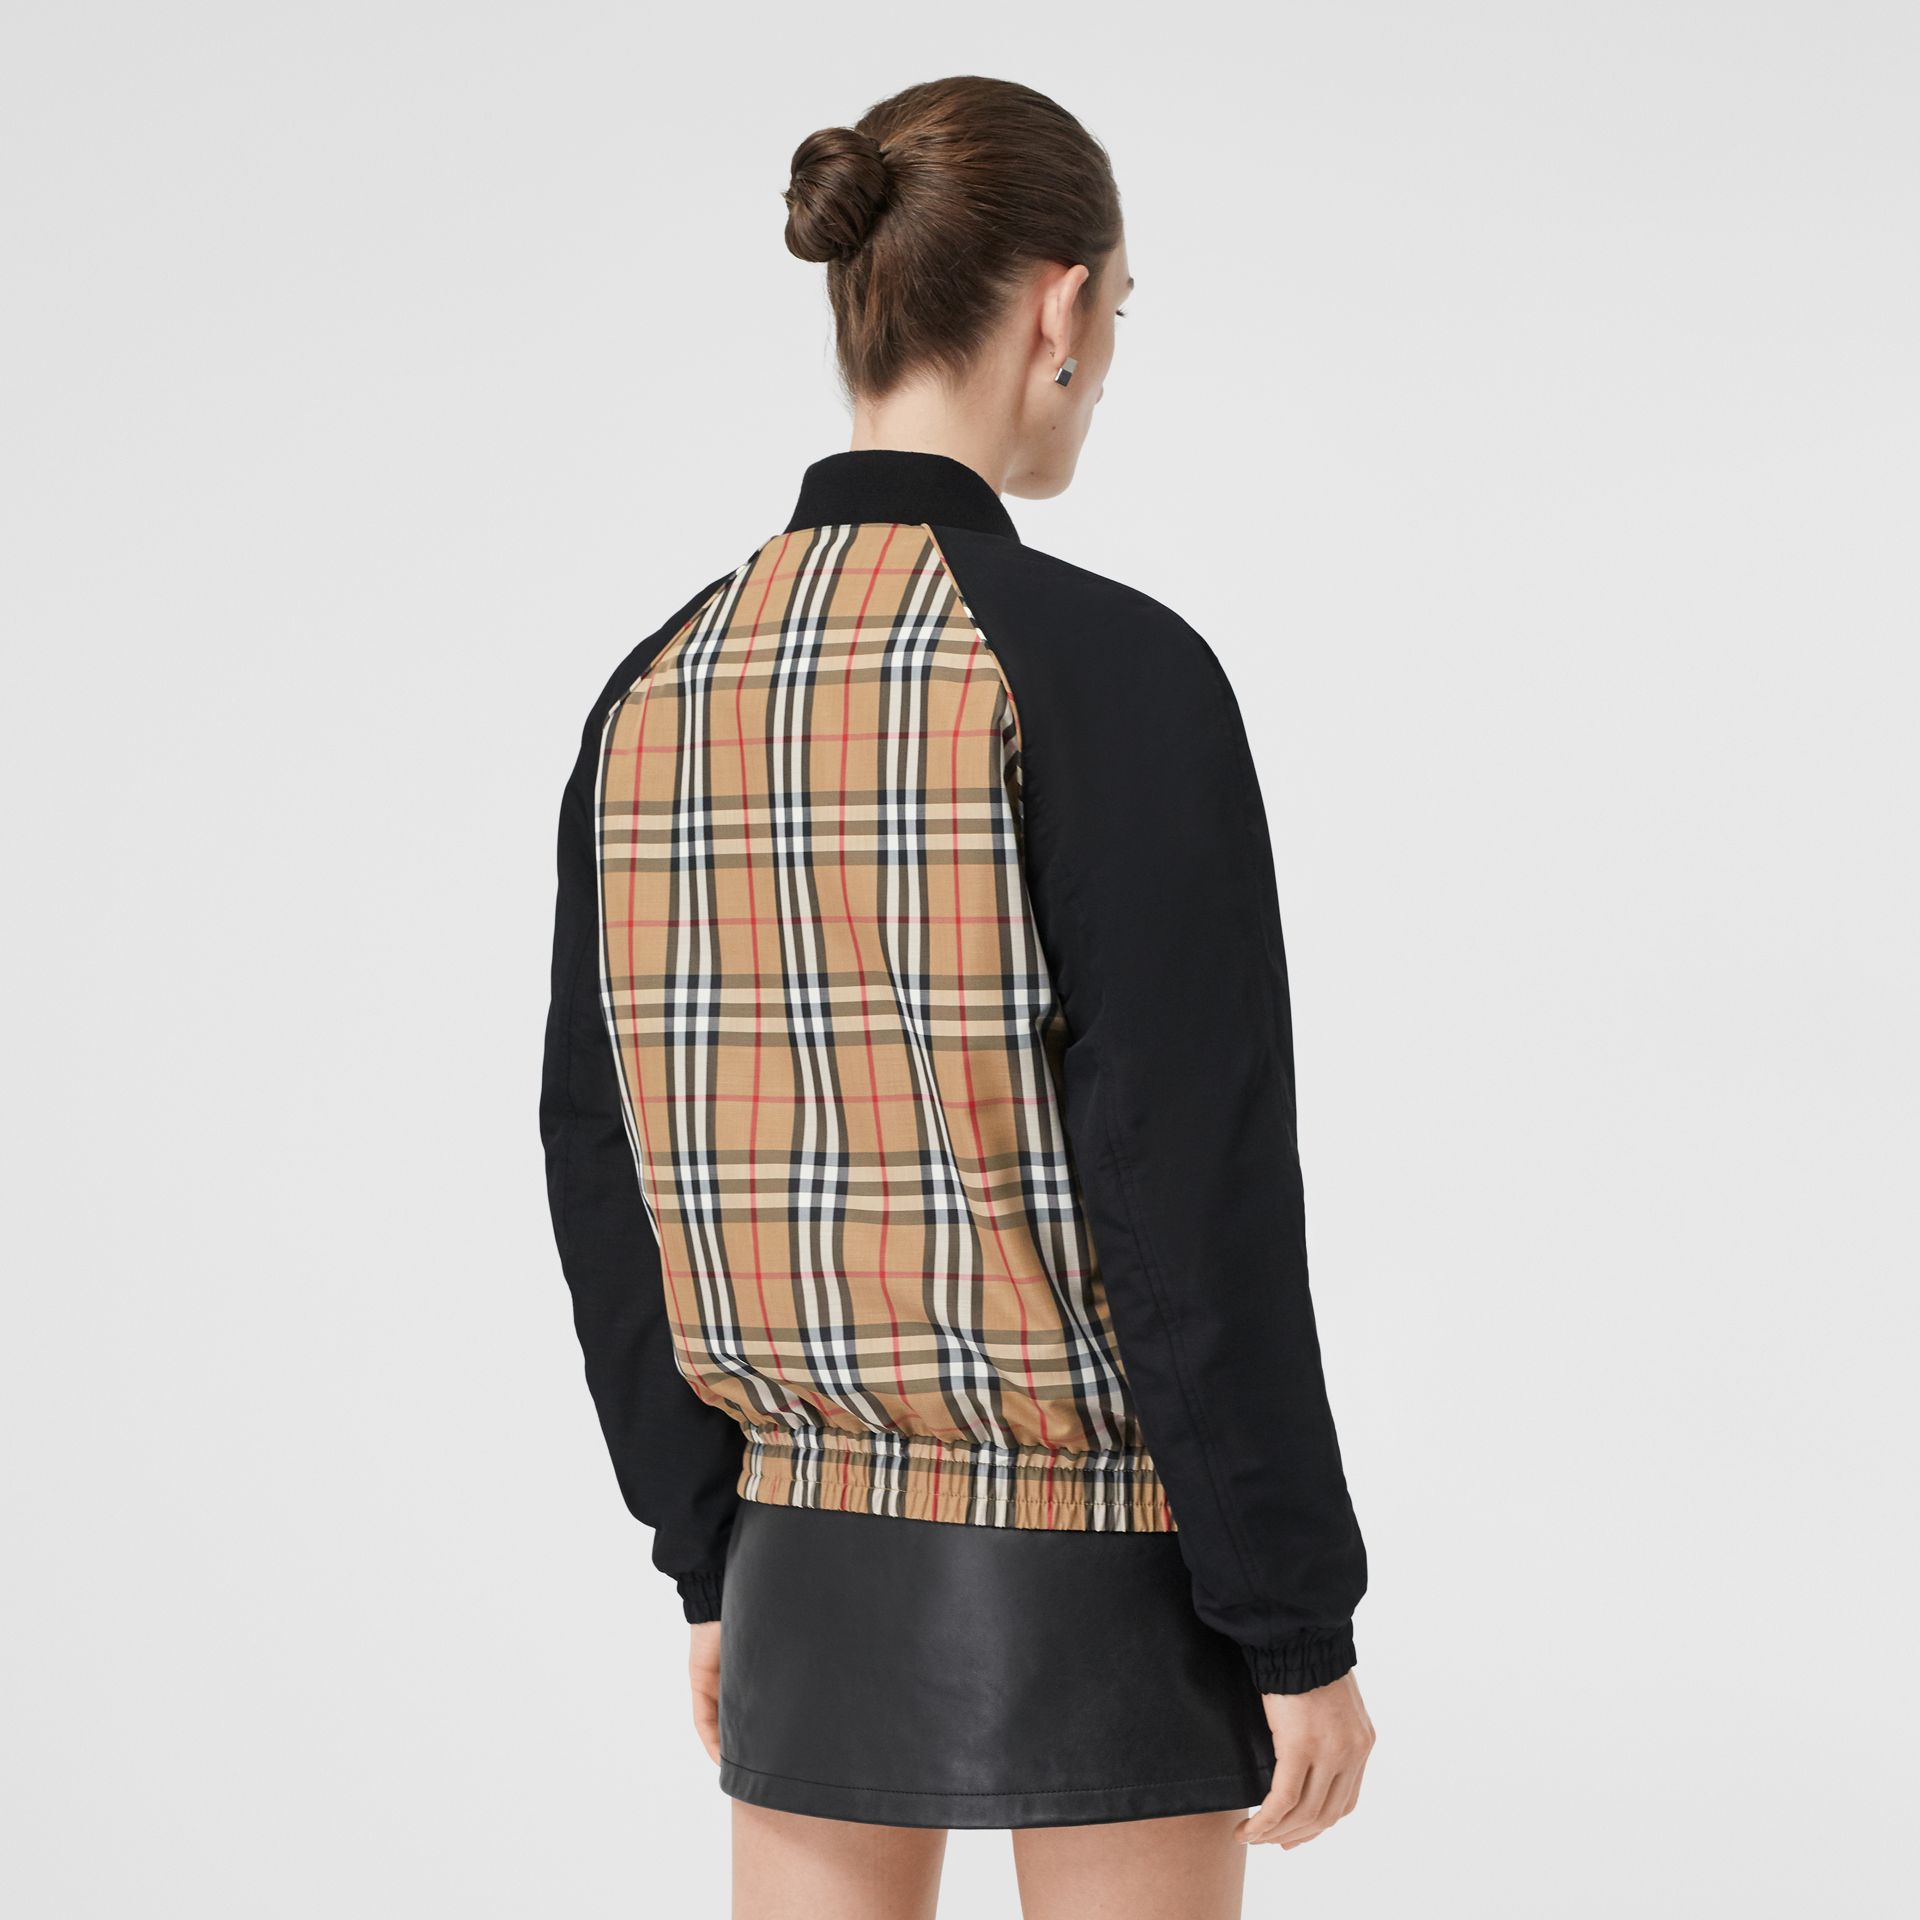 Monogram Motif Vintage Check Bomber Jacket in Black - Women | Burberry - gallery image 2